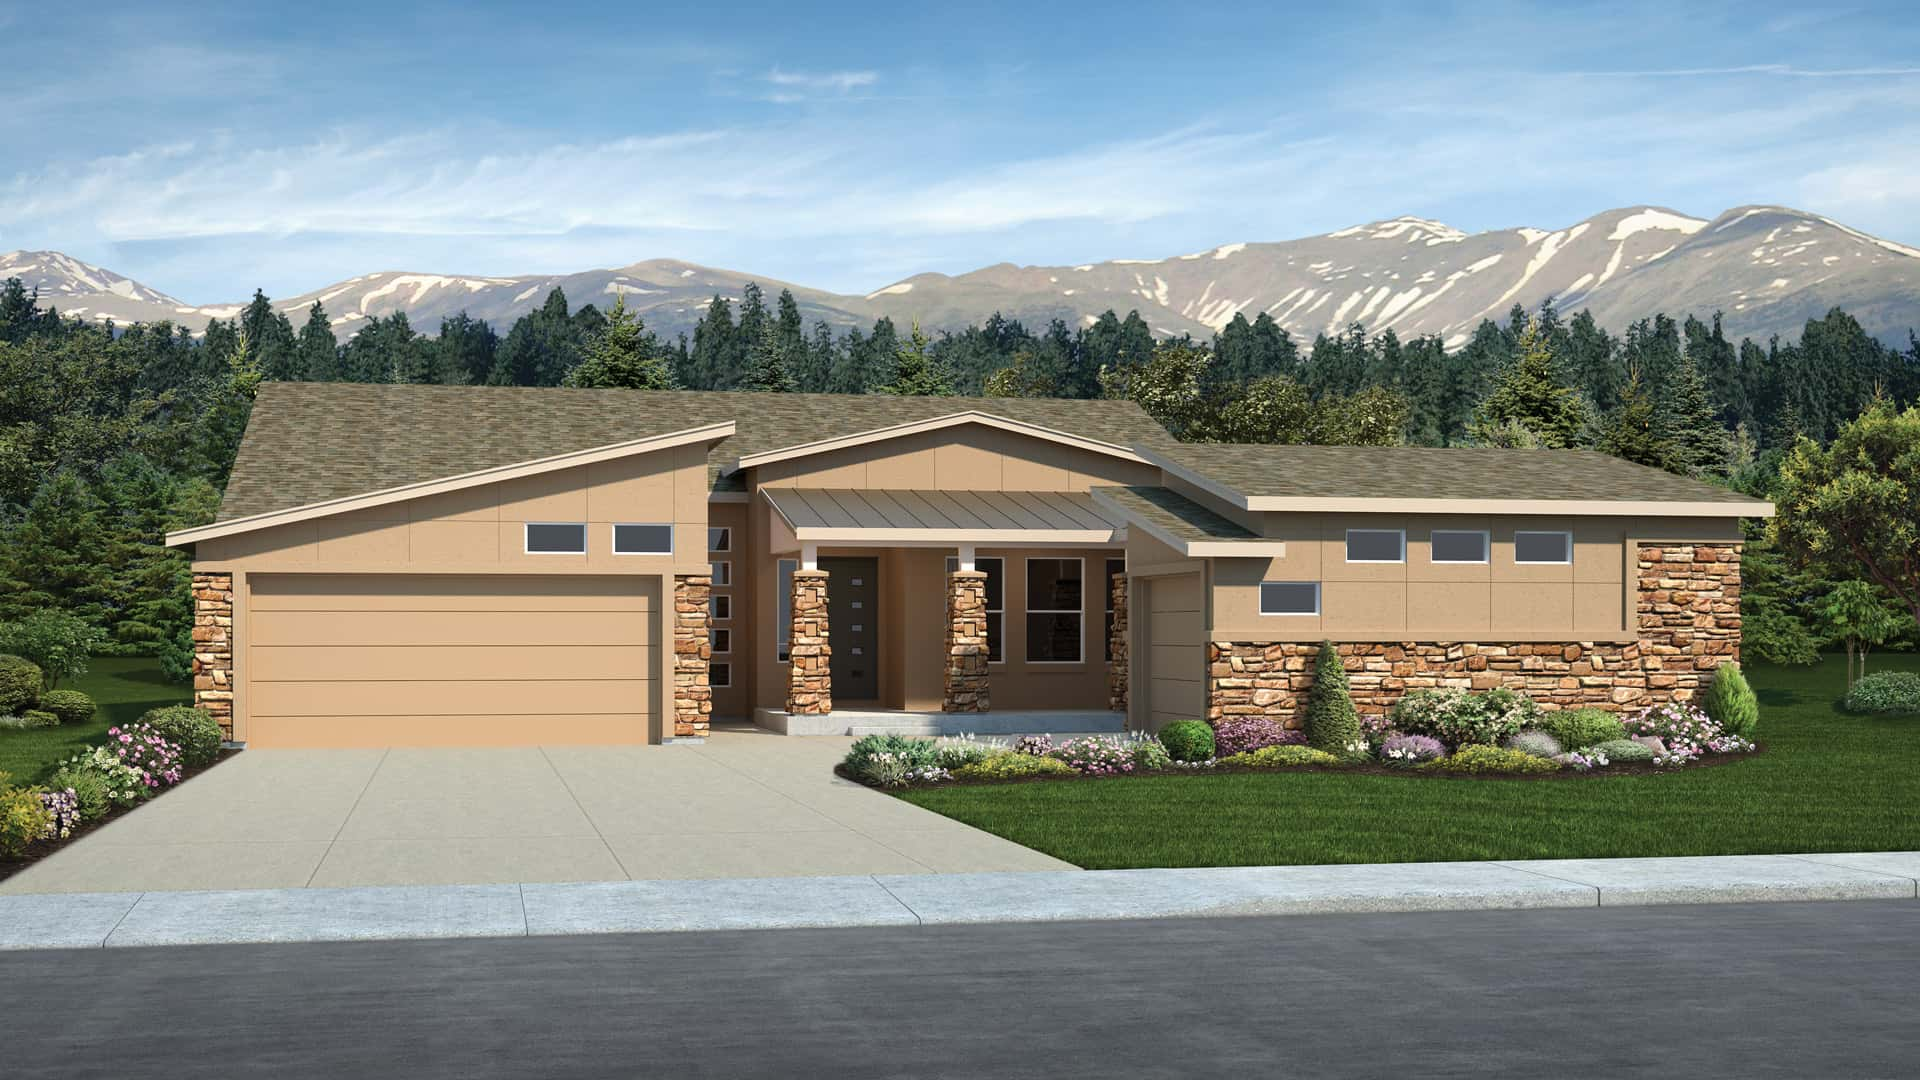 carrier infinity 96 wiring diagram anterior forearm muscle anatomy ranch style floorplan information classic homes